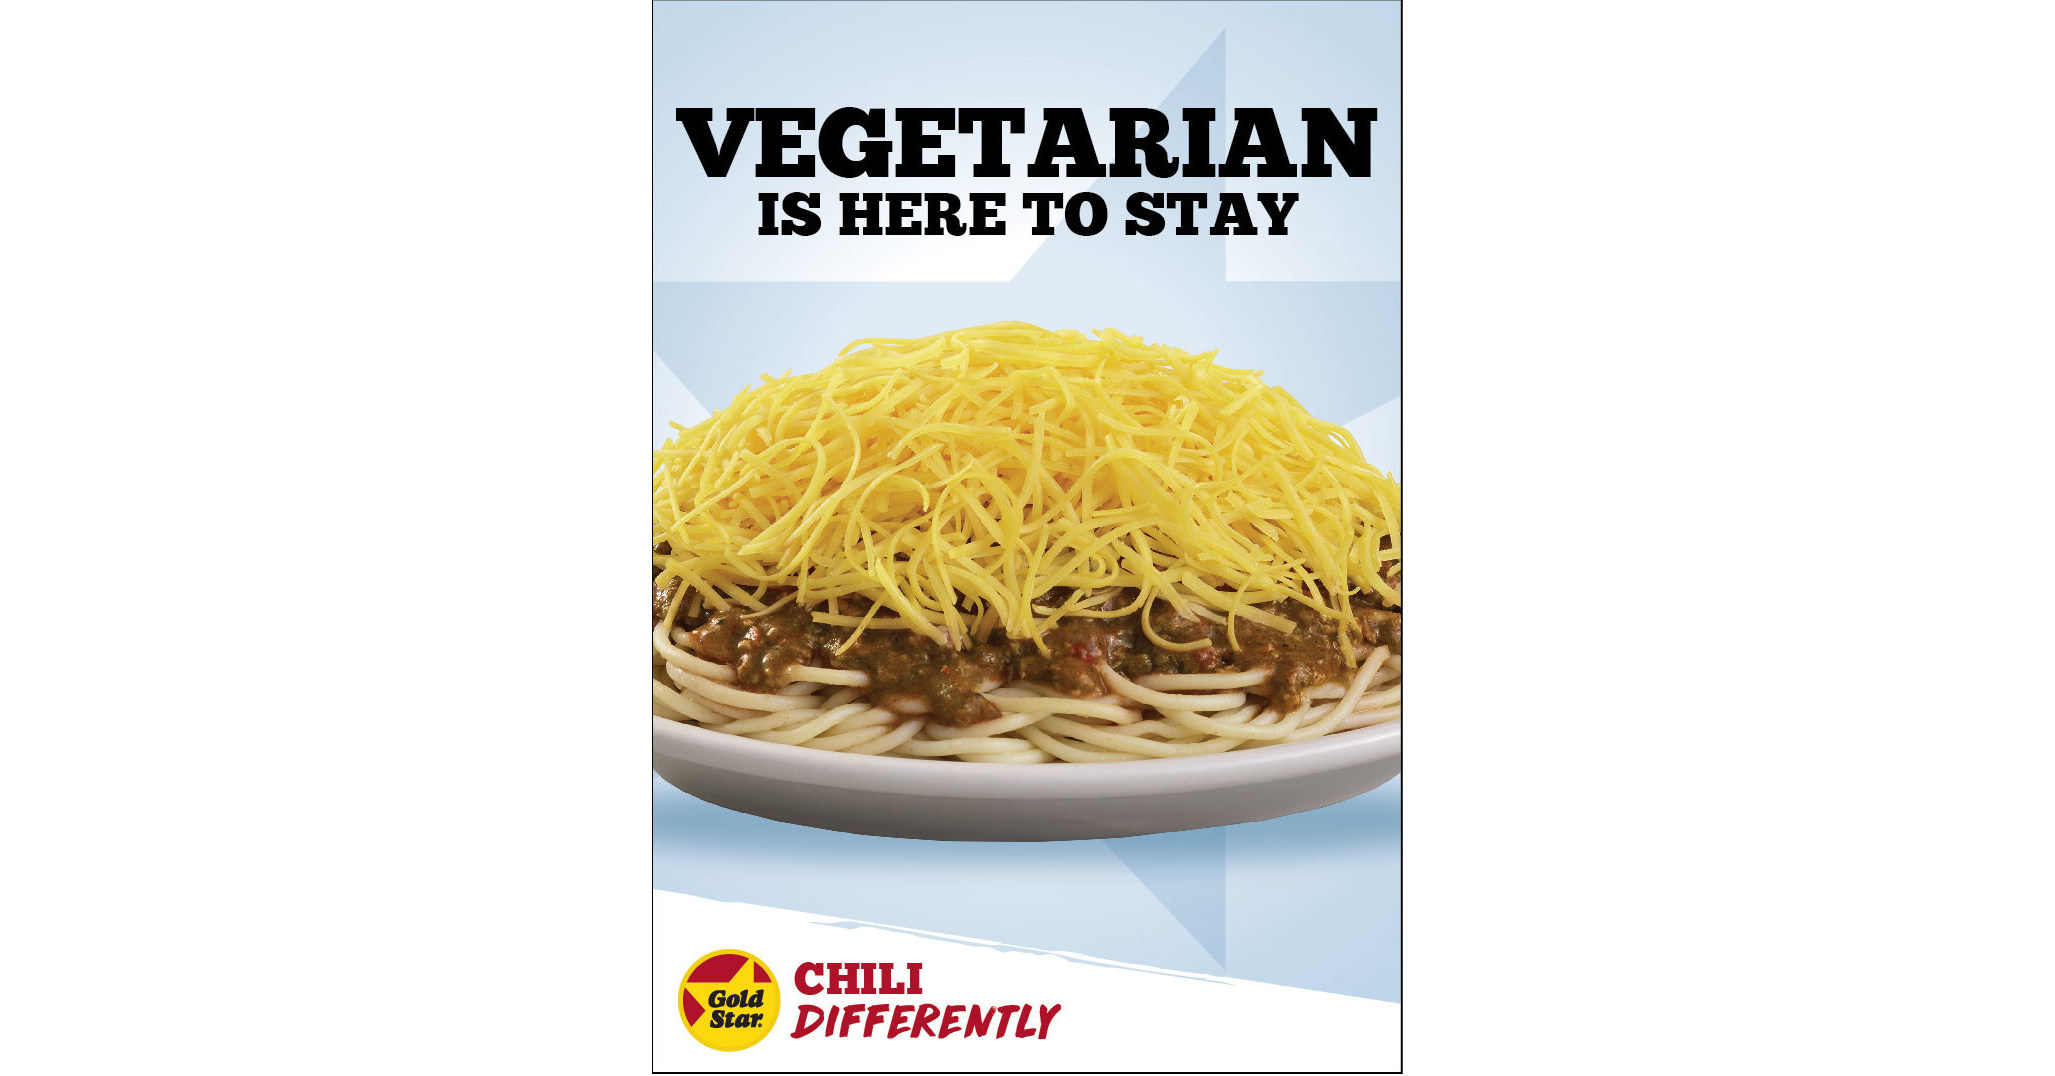 Gold Star Chili S Cincinnati Style Vegetarian Chili Is Here To Stay